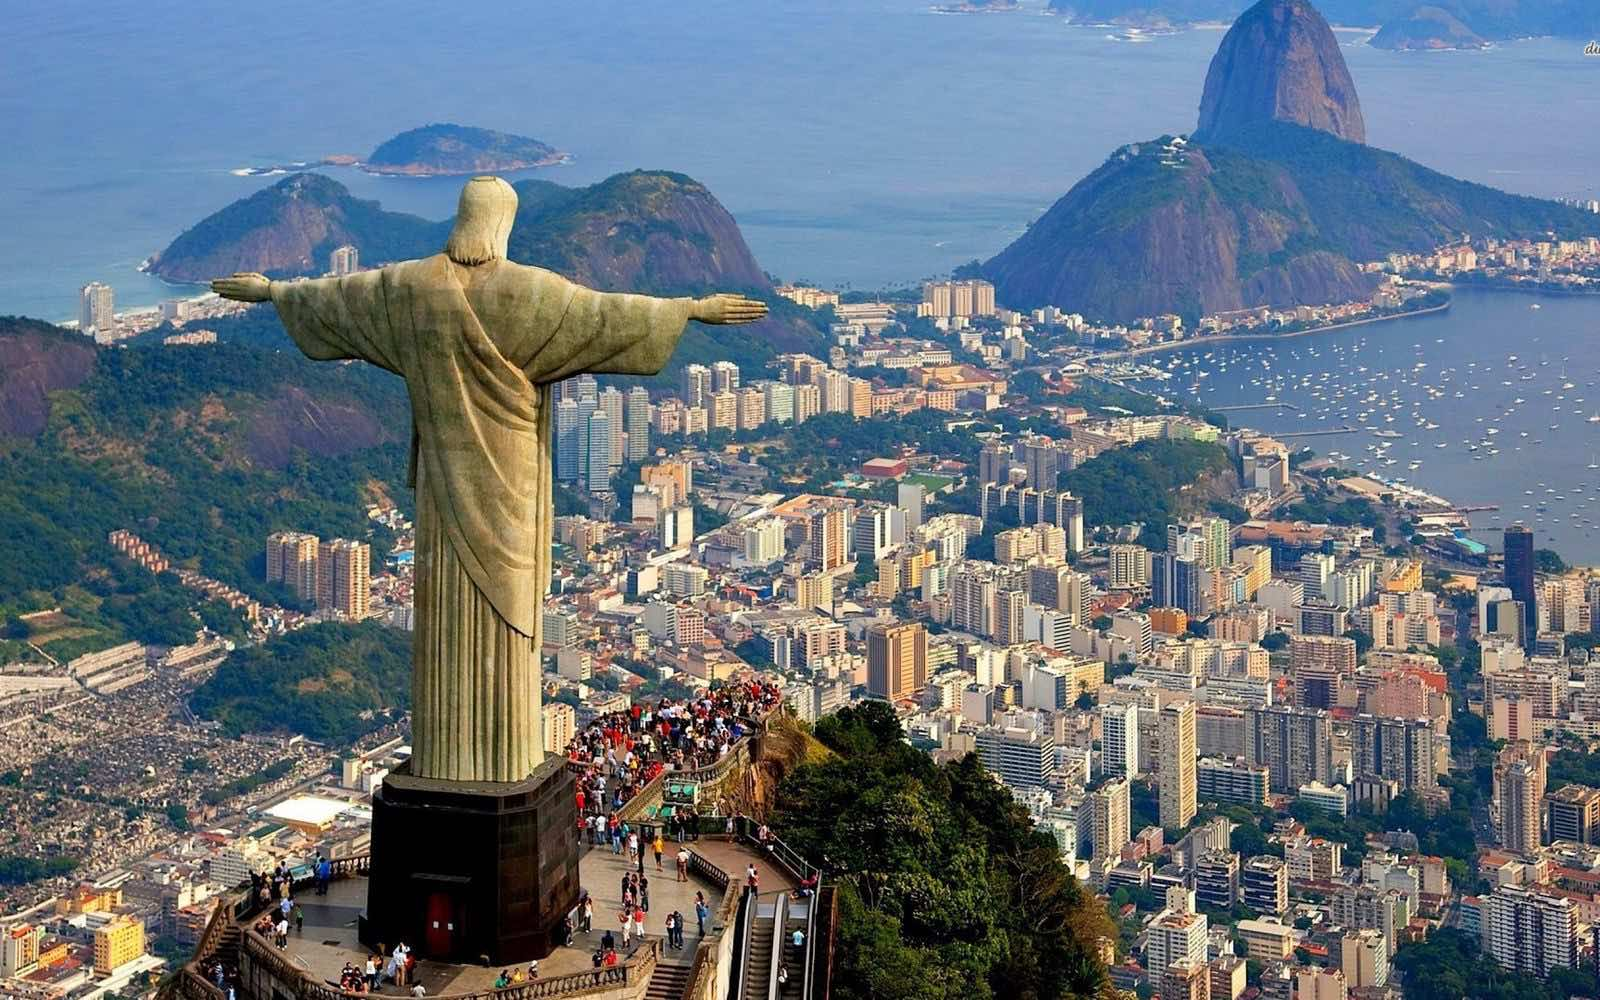 rio de janeiro asian women dating site Complete coverage of the 2016 olympic games in rio de janeiro  with  audience shrinking, nbc looks cautiously to olympics in asia the next  the  countries where women won more medals than men in rio  go to home  page ».